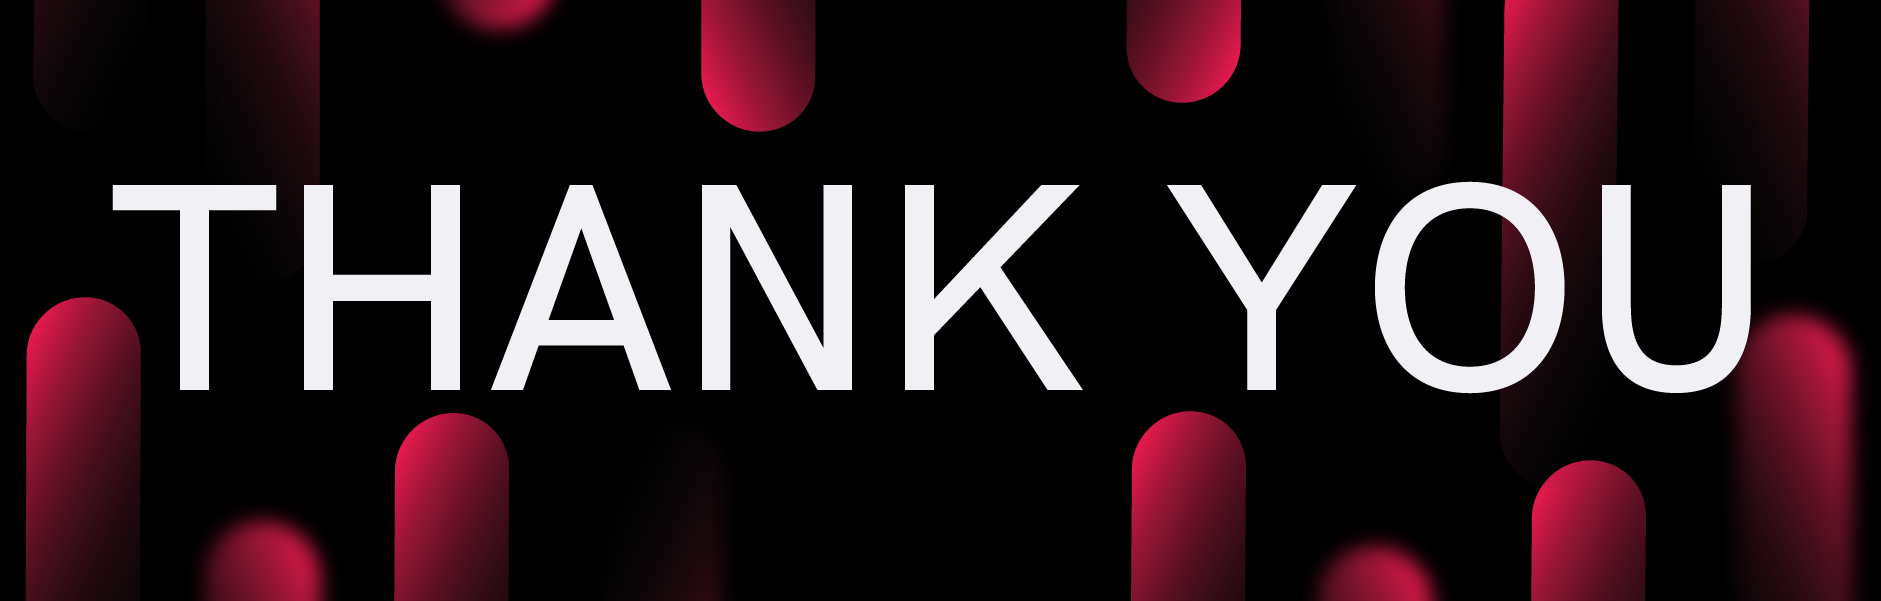 Thank-you_banner3